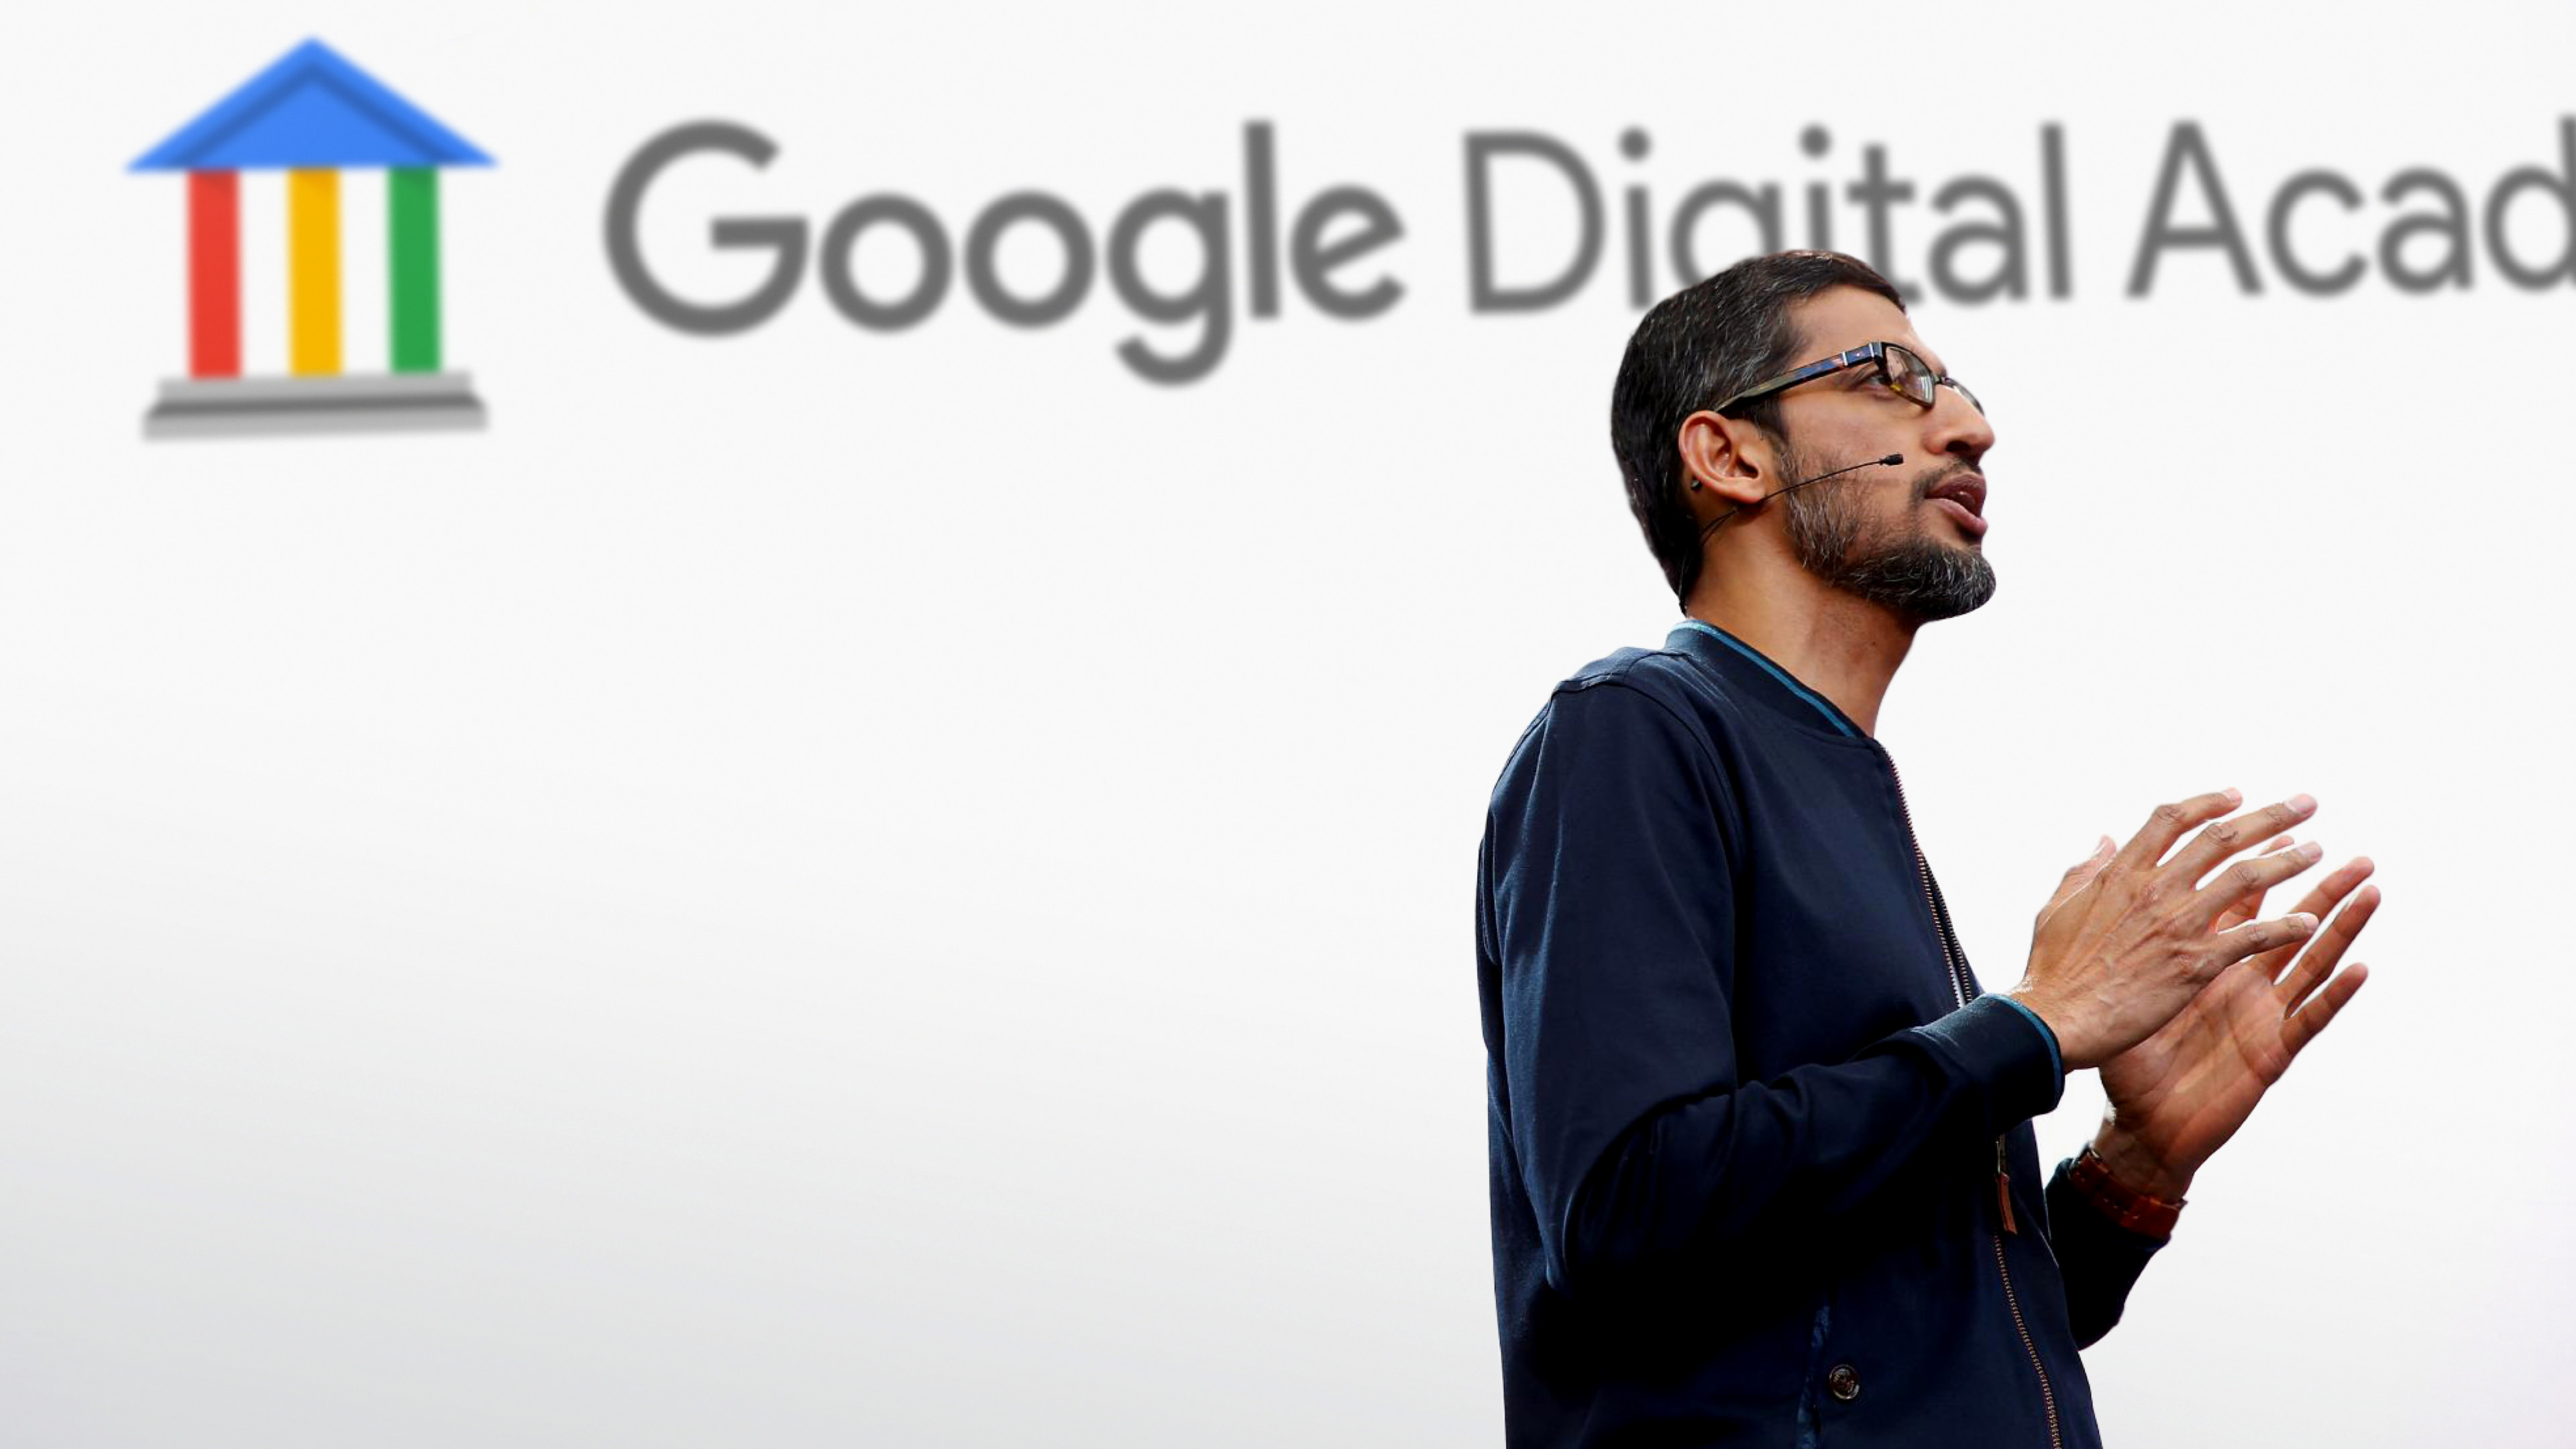 Google Digital Academy Branding - Jack Morgan